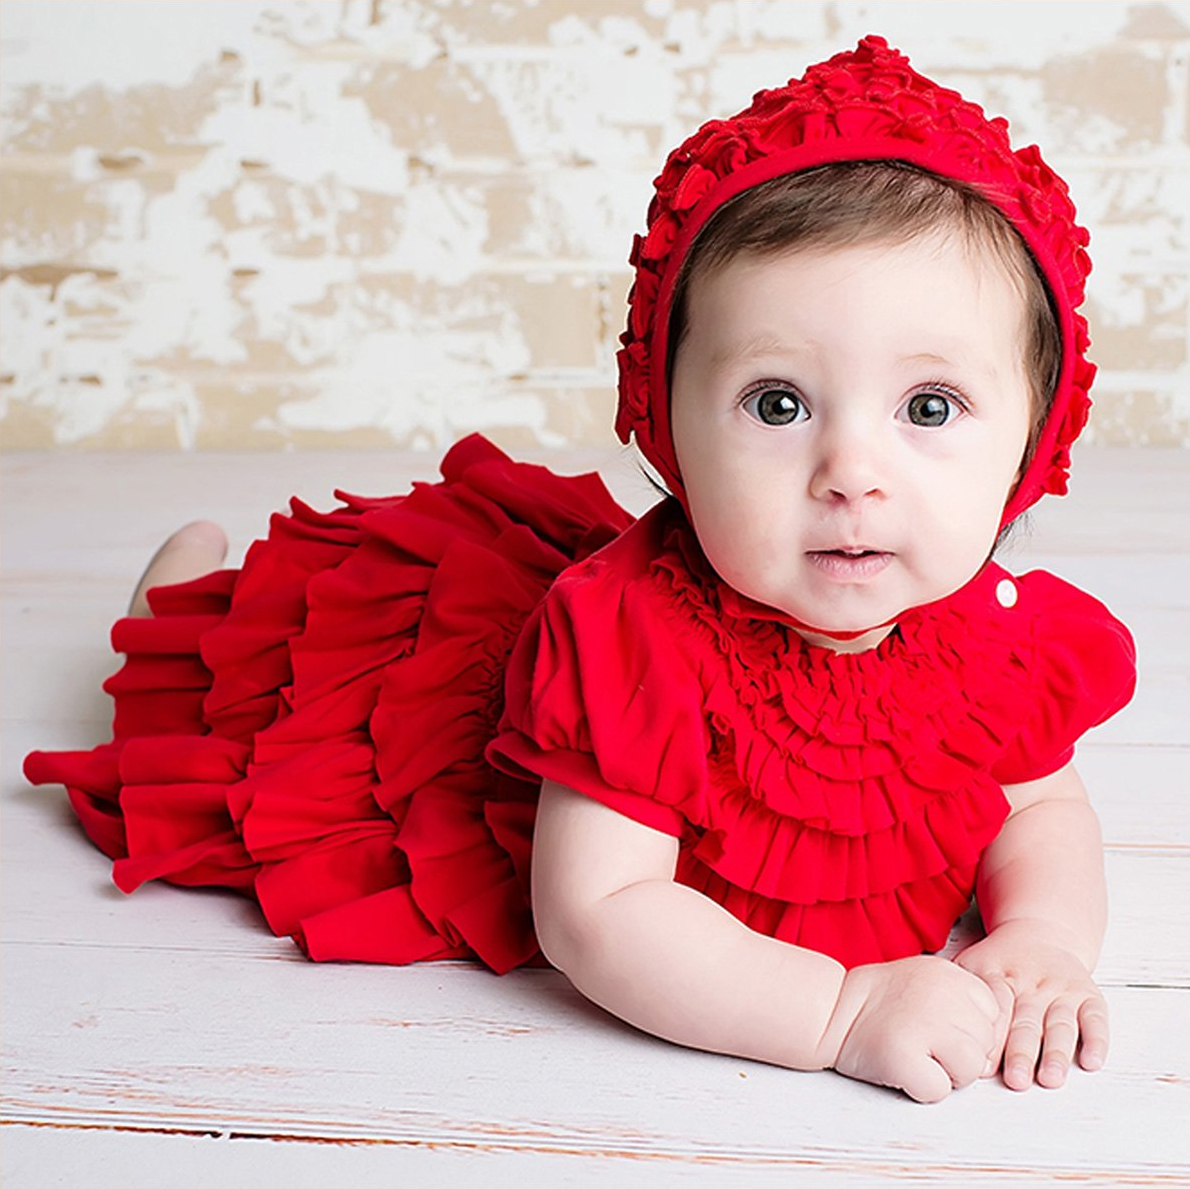 e26c7863273 Red Baby Dress for the Holidays from Lemon Loves Layette - Jane Dress